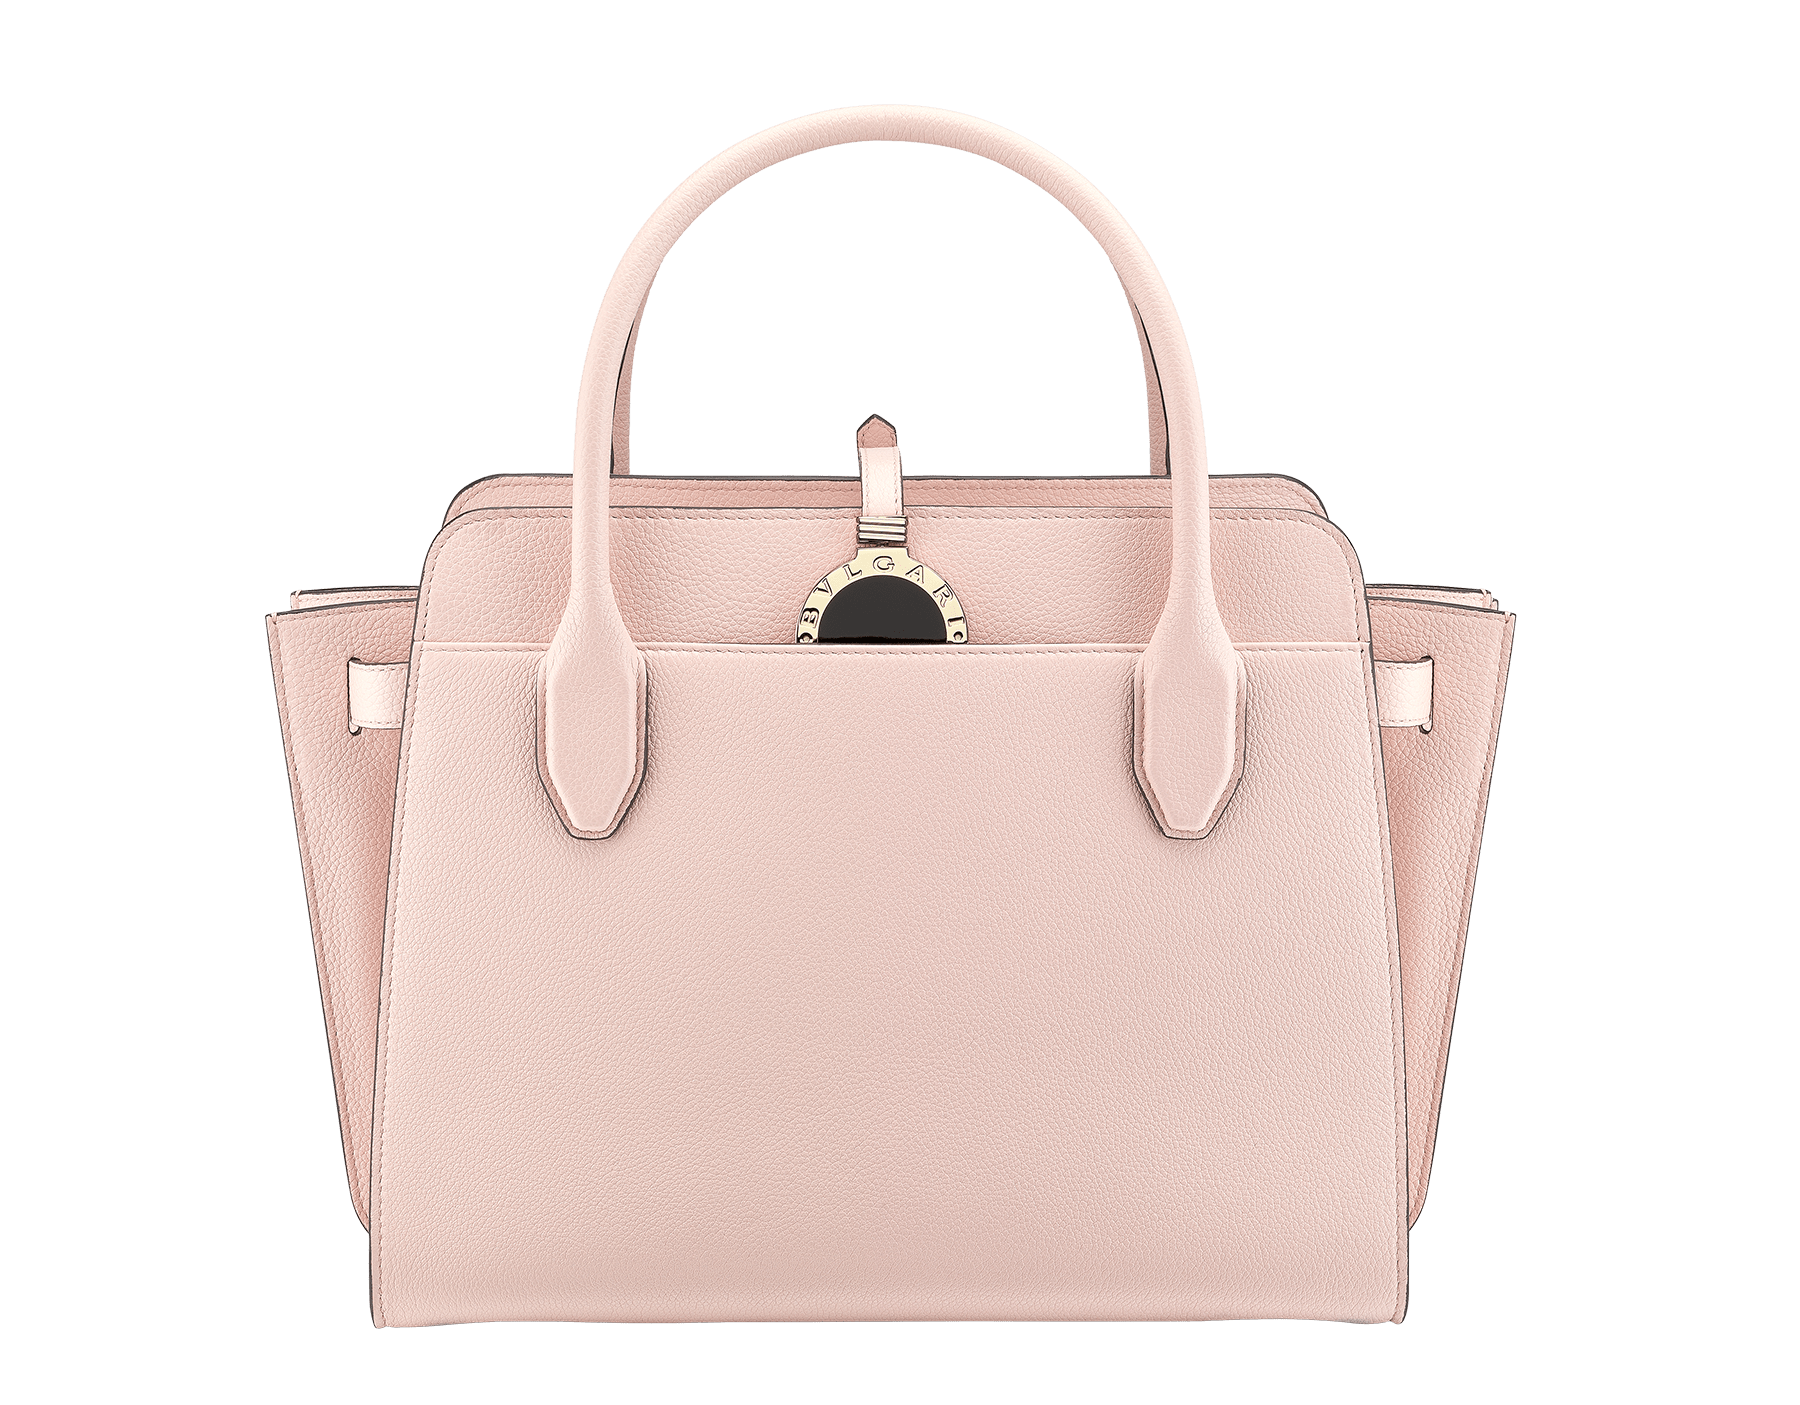 BVLGARI BVLGARI Alba tote bag in crystal rose grain calf leather, with zip closure. Iconic double logo pendant in brass light gold plated metal with black enamel on the front side, leather on the back side and Tubogas motif 834-CL image 1